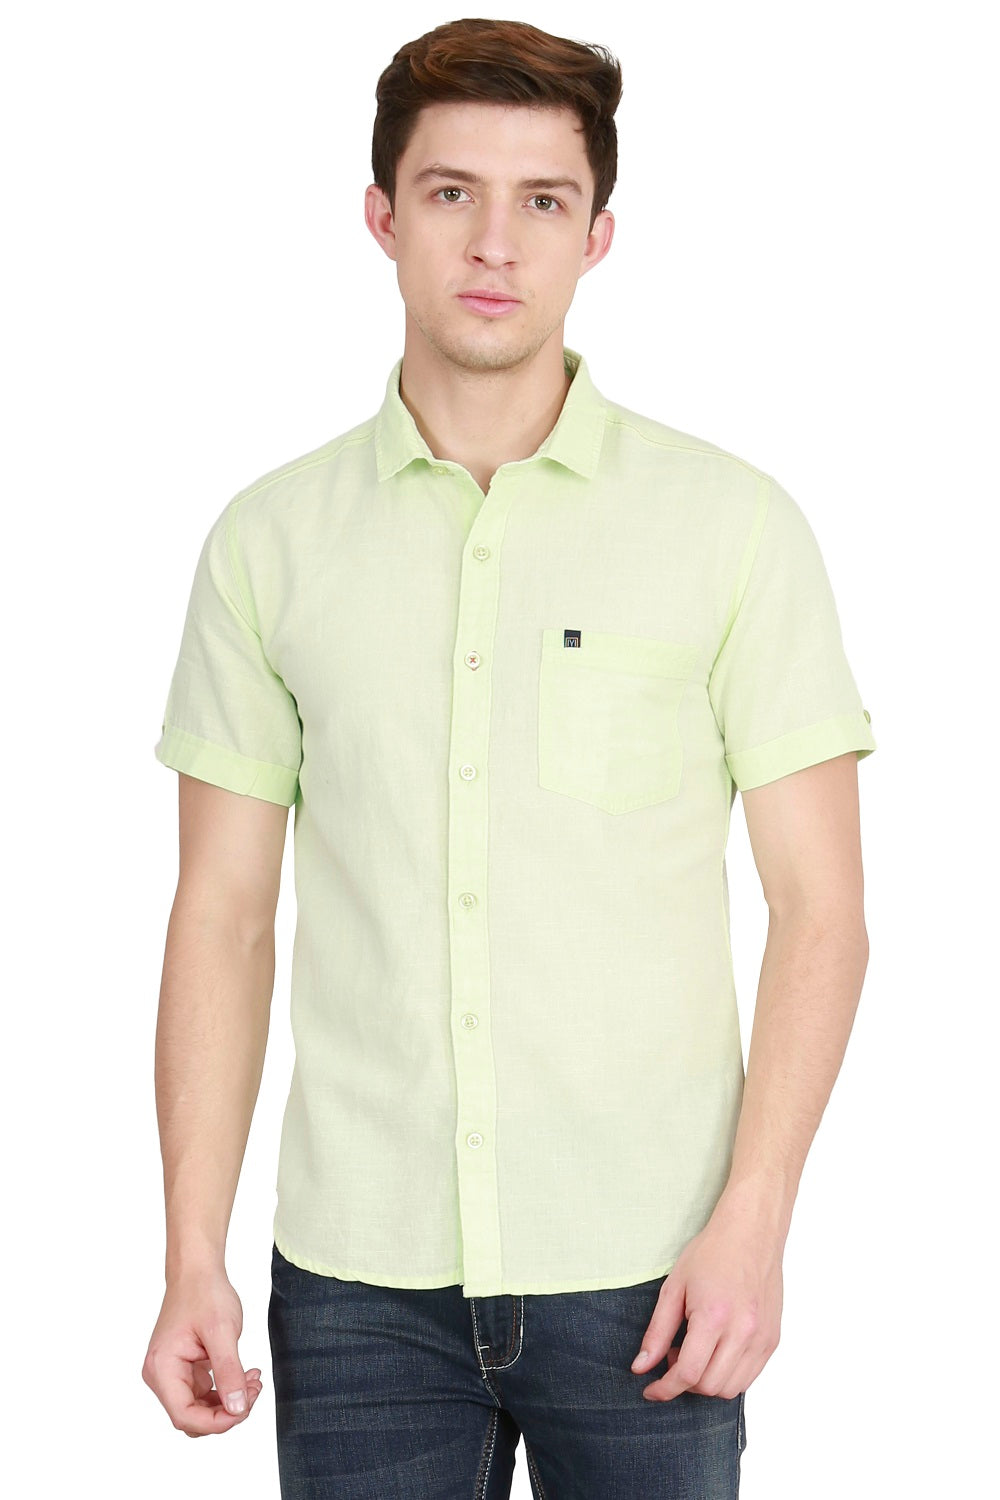 IMYOUNG Men's Solid Pista Green Cotton Linen Casual Shirt